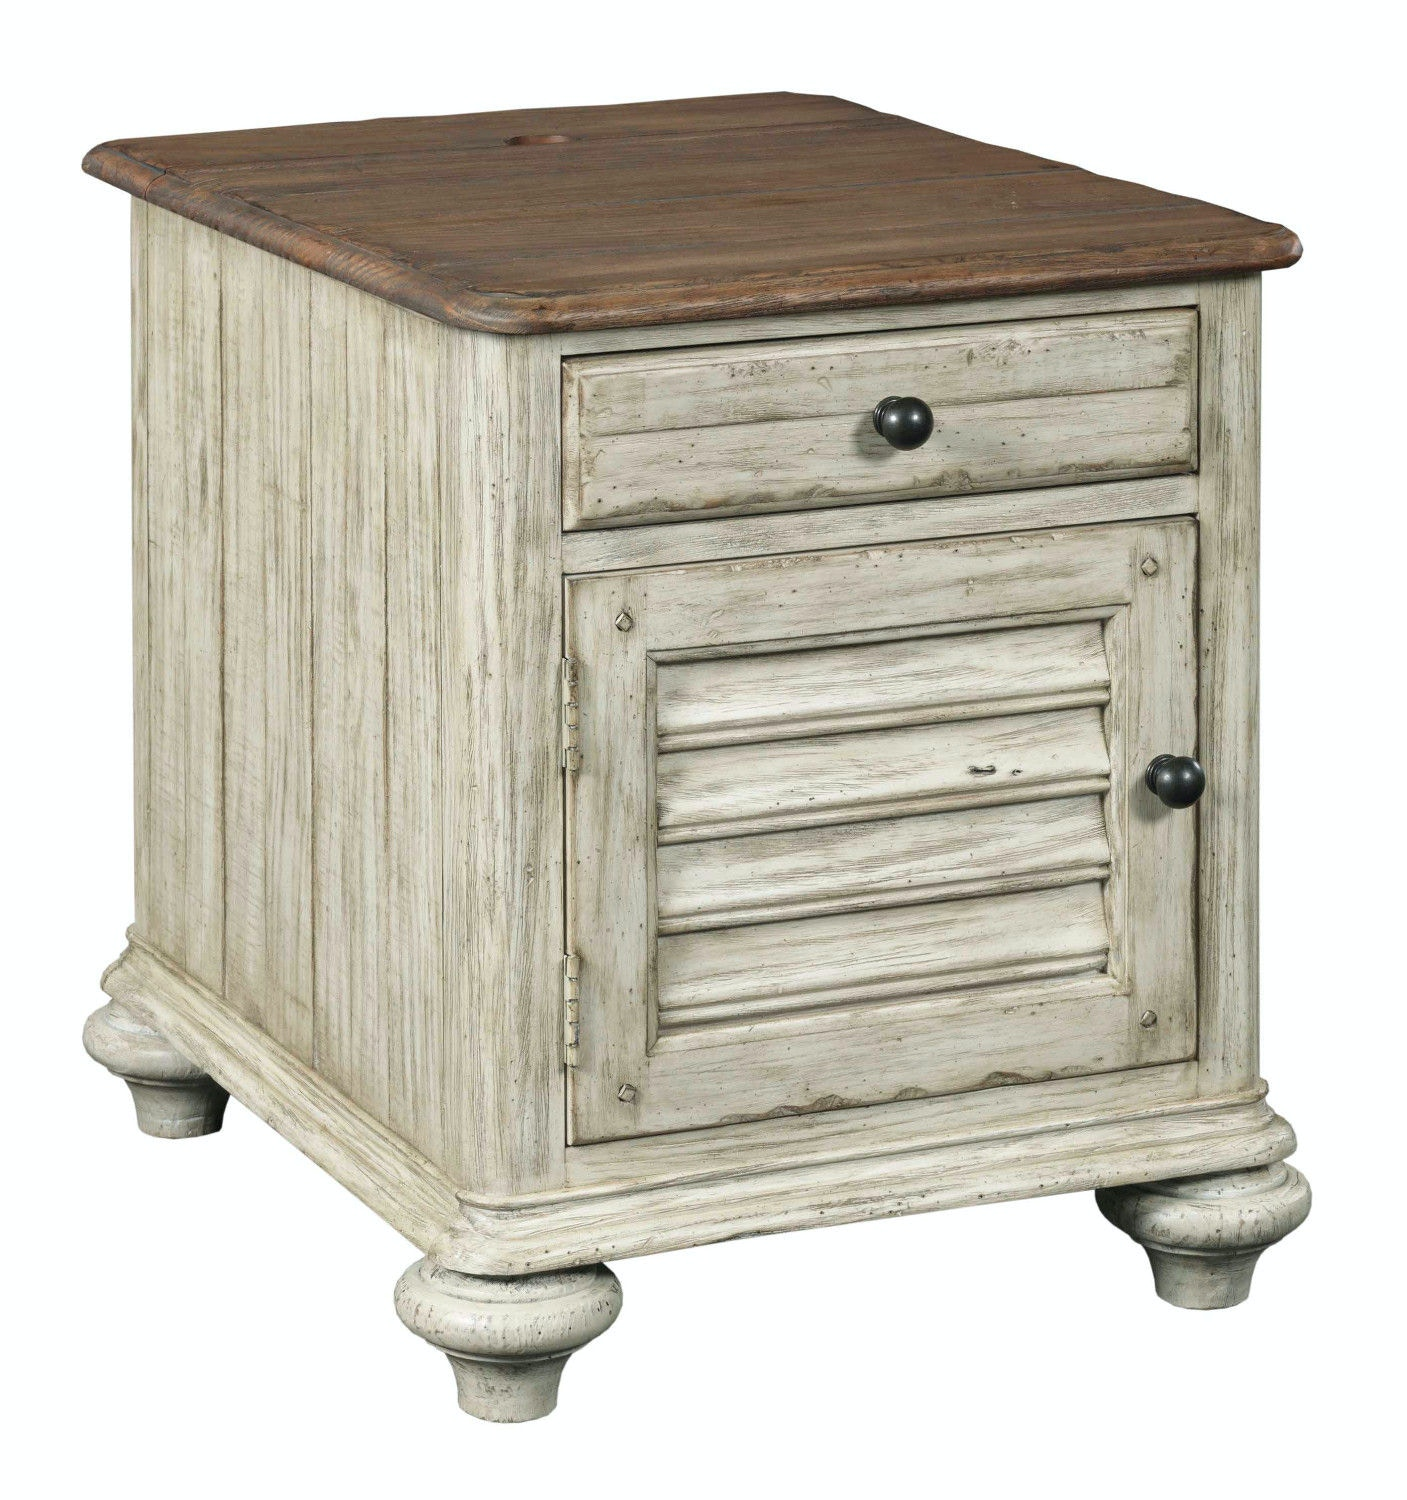 Weatherford Chairside Table U2013 CORNSILK ST:475255